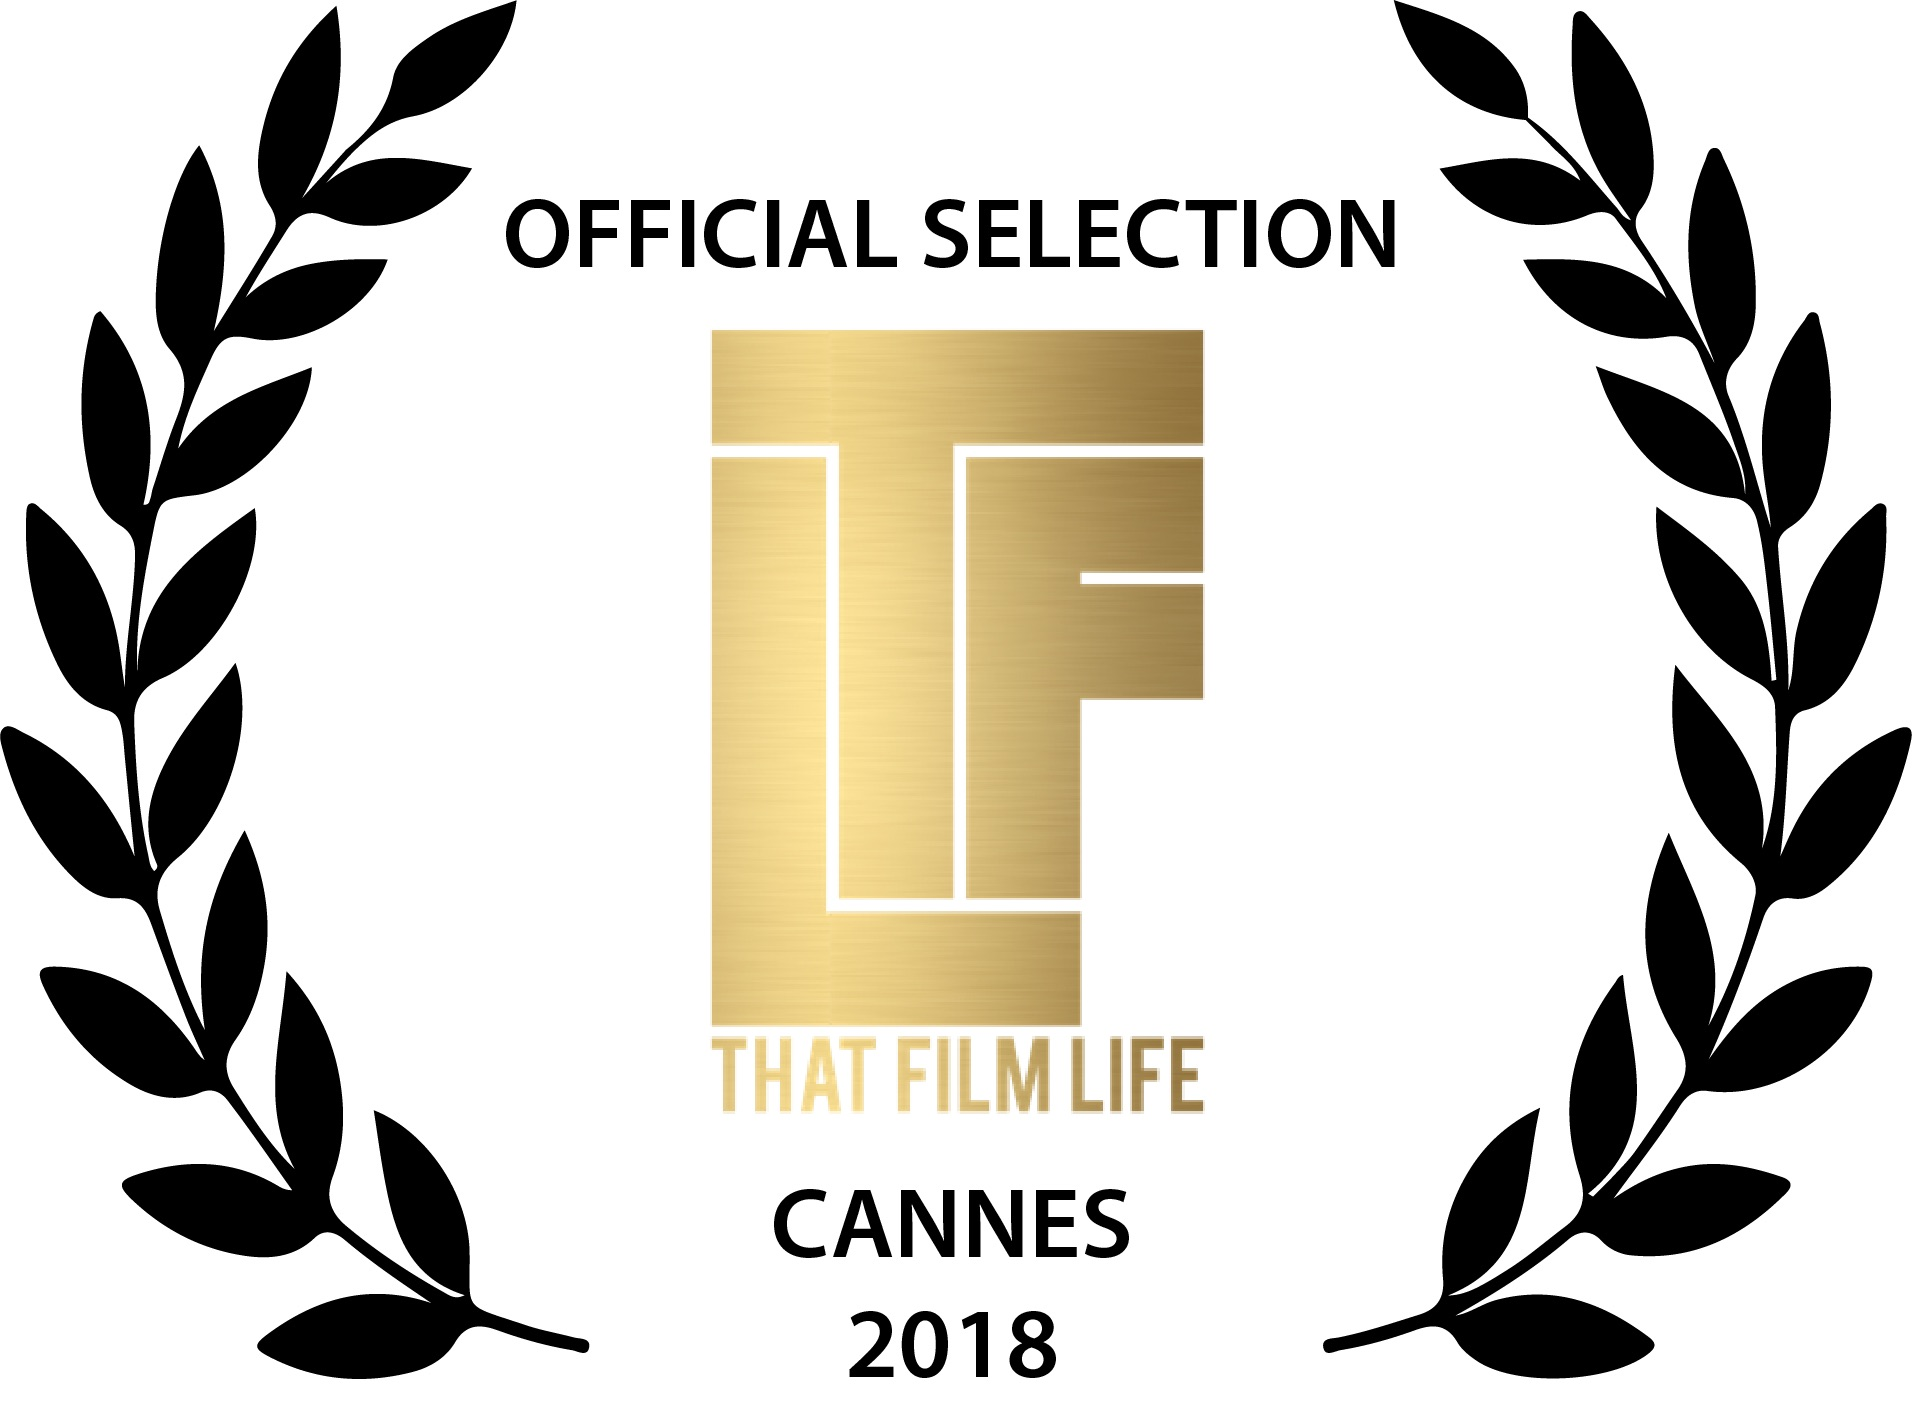 TFL OFFICIAL SELECTION CANNES